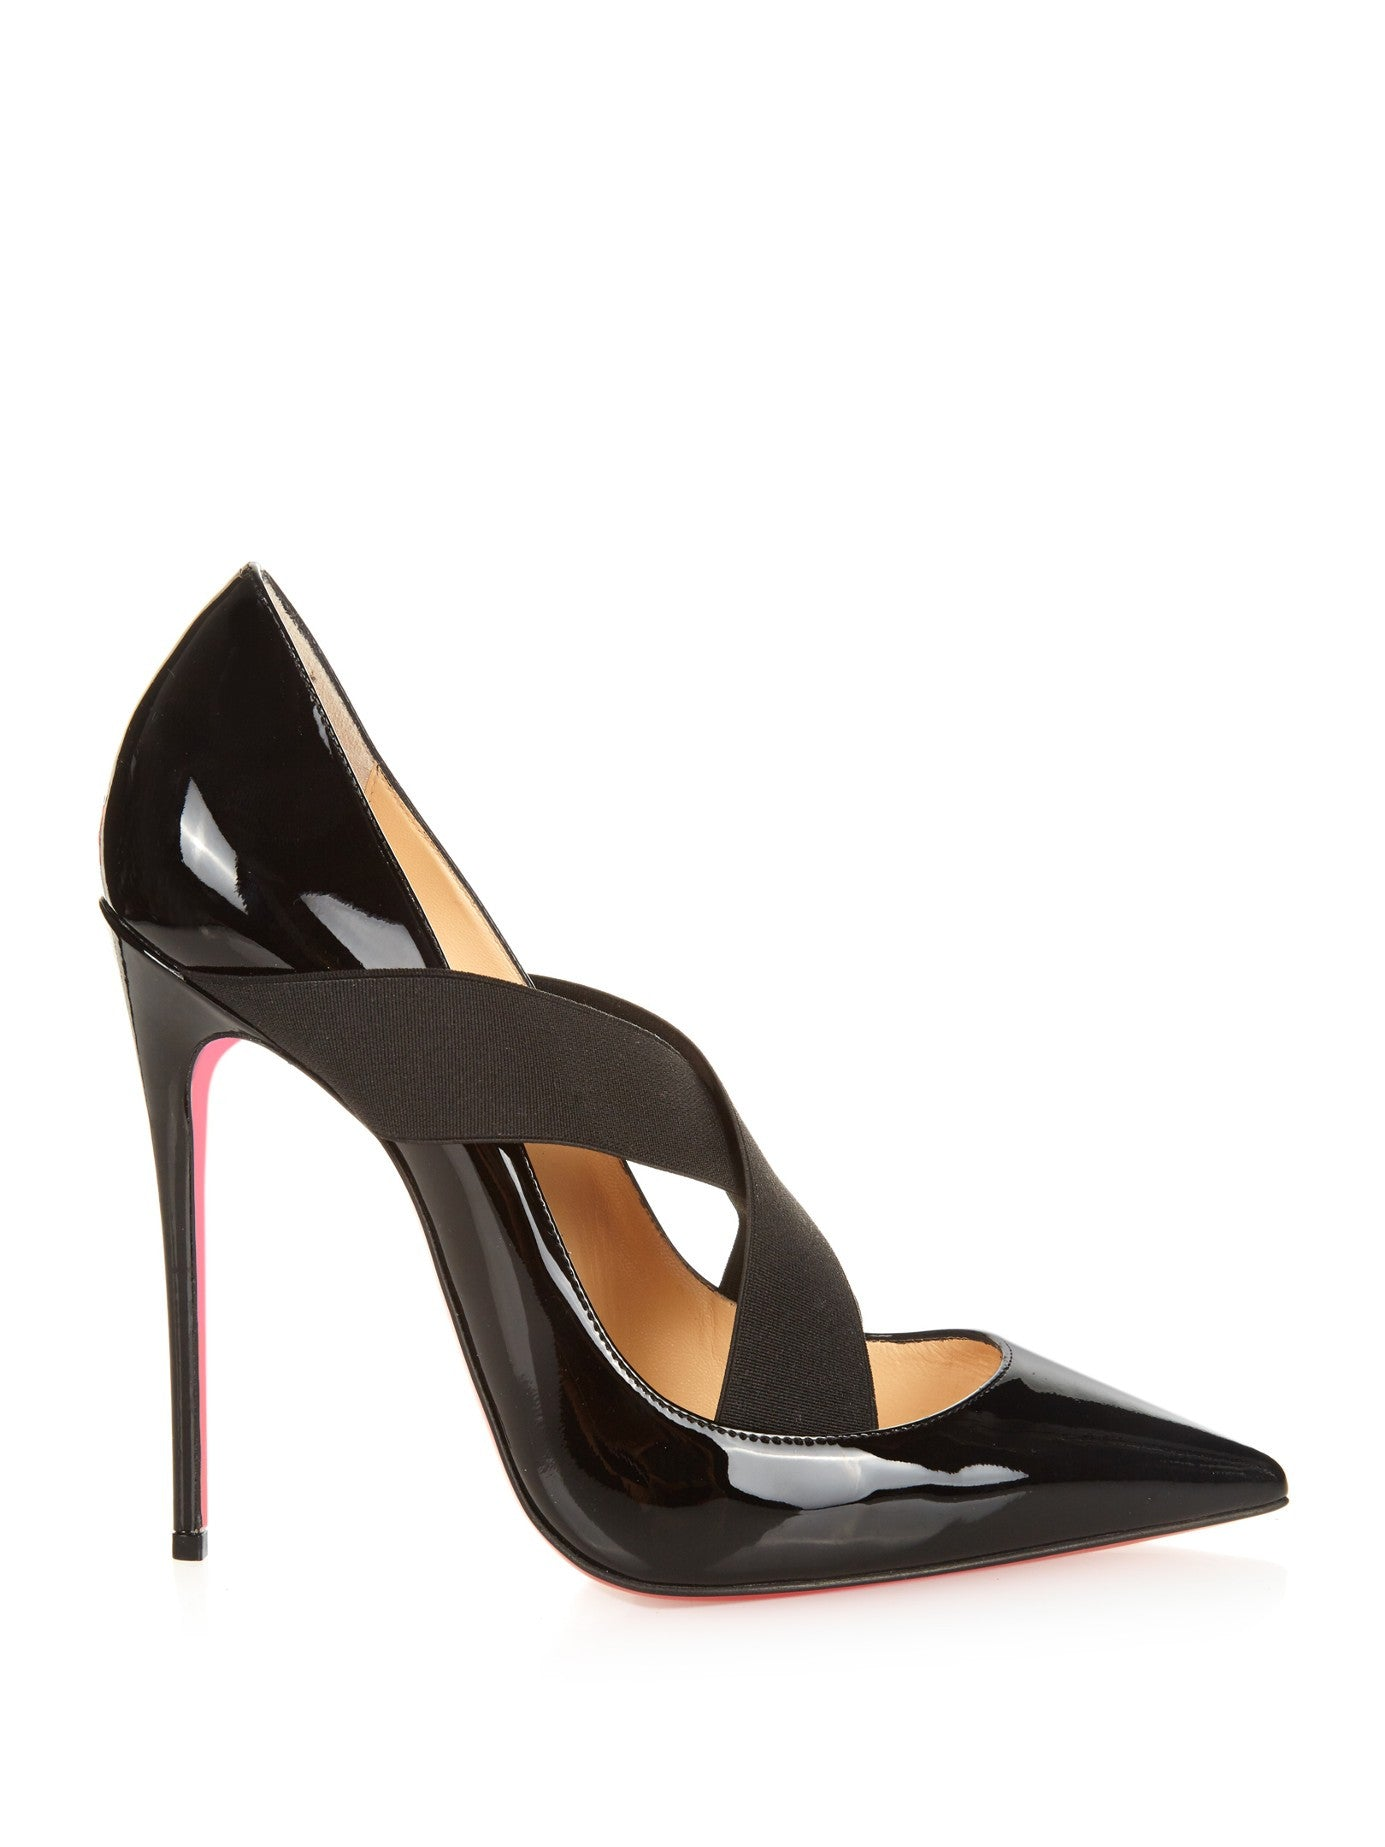 MatchesFashion Christian Louboutin Sharpstagram 120mm Patent Leather Pumps